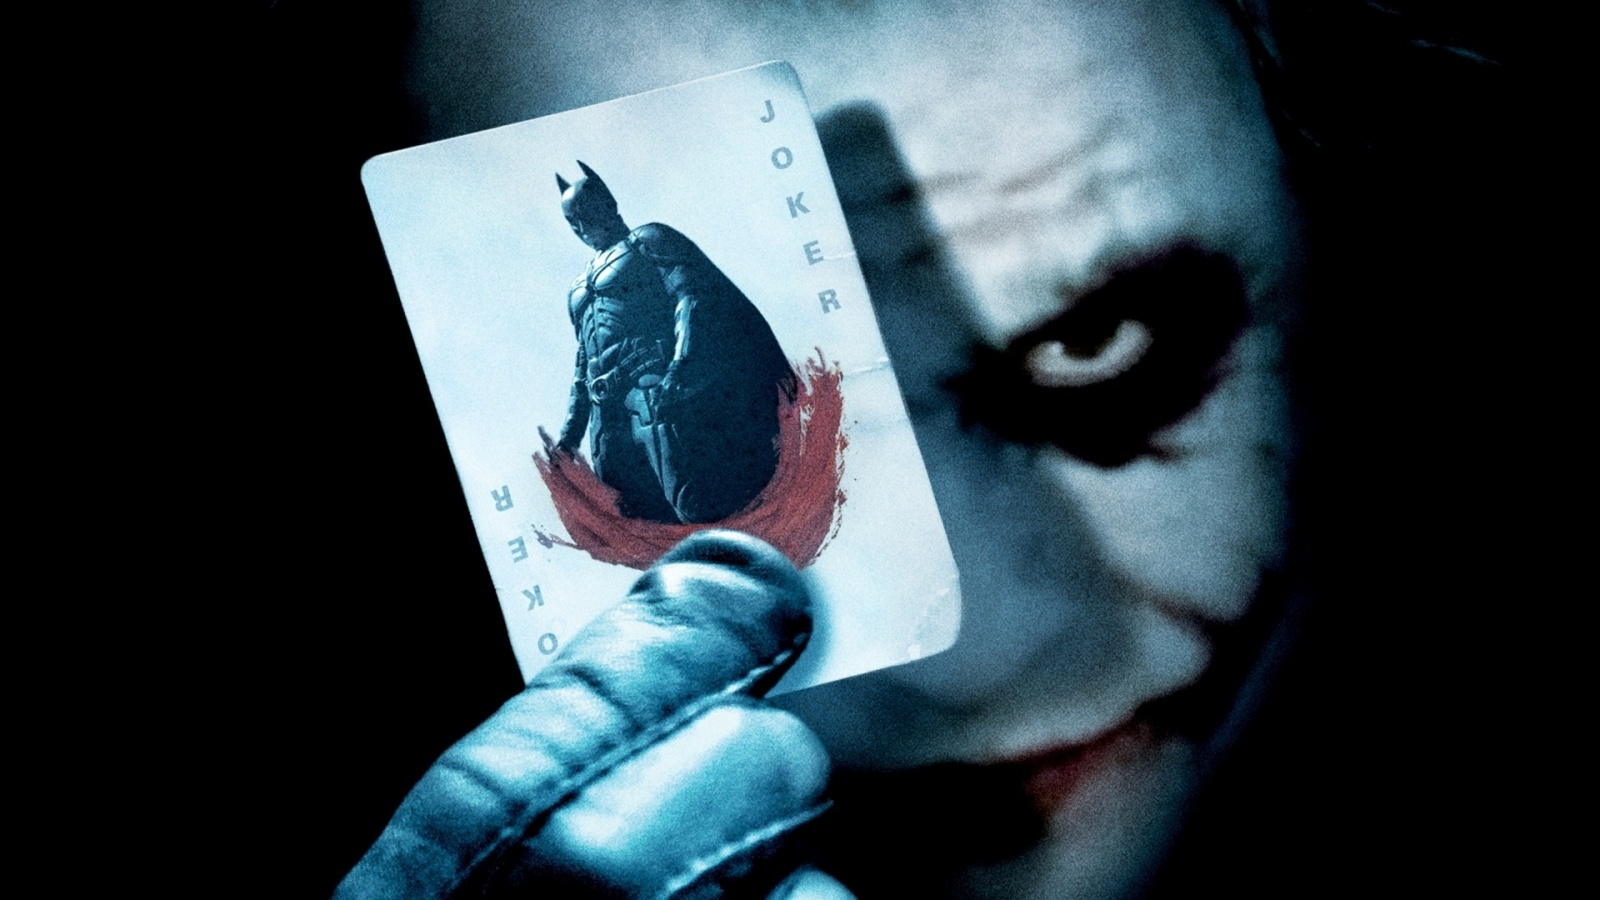 Batman Joker Card Wallpapers HD Wallpapers 1600x900